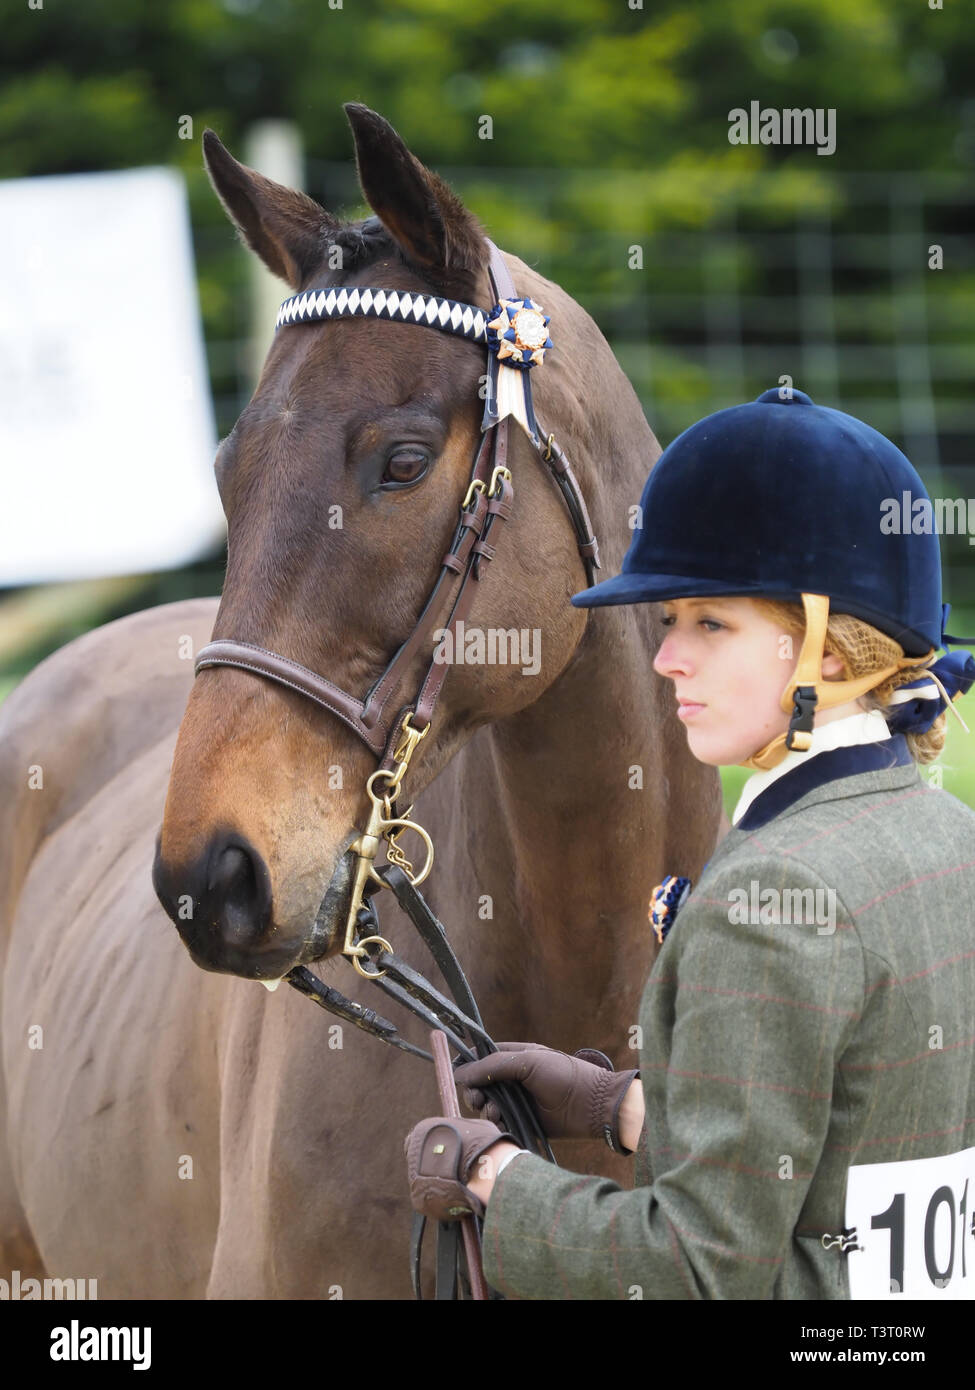 A bay horse and her handler stand in a show ring. - Stock Image